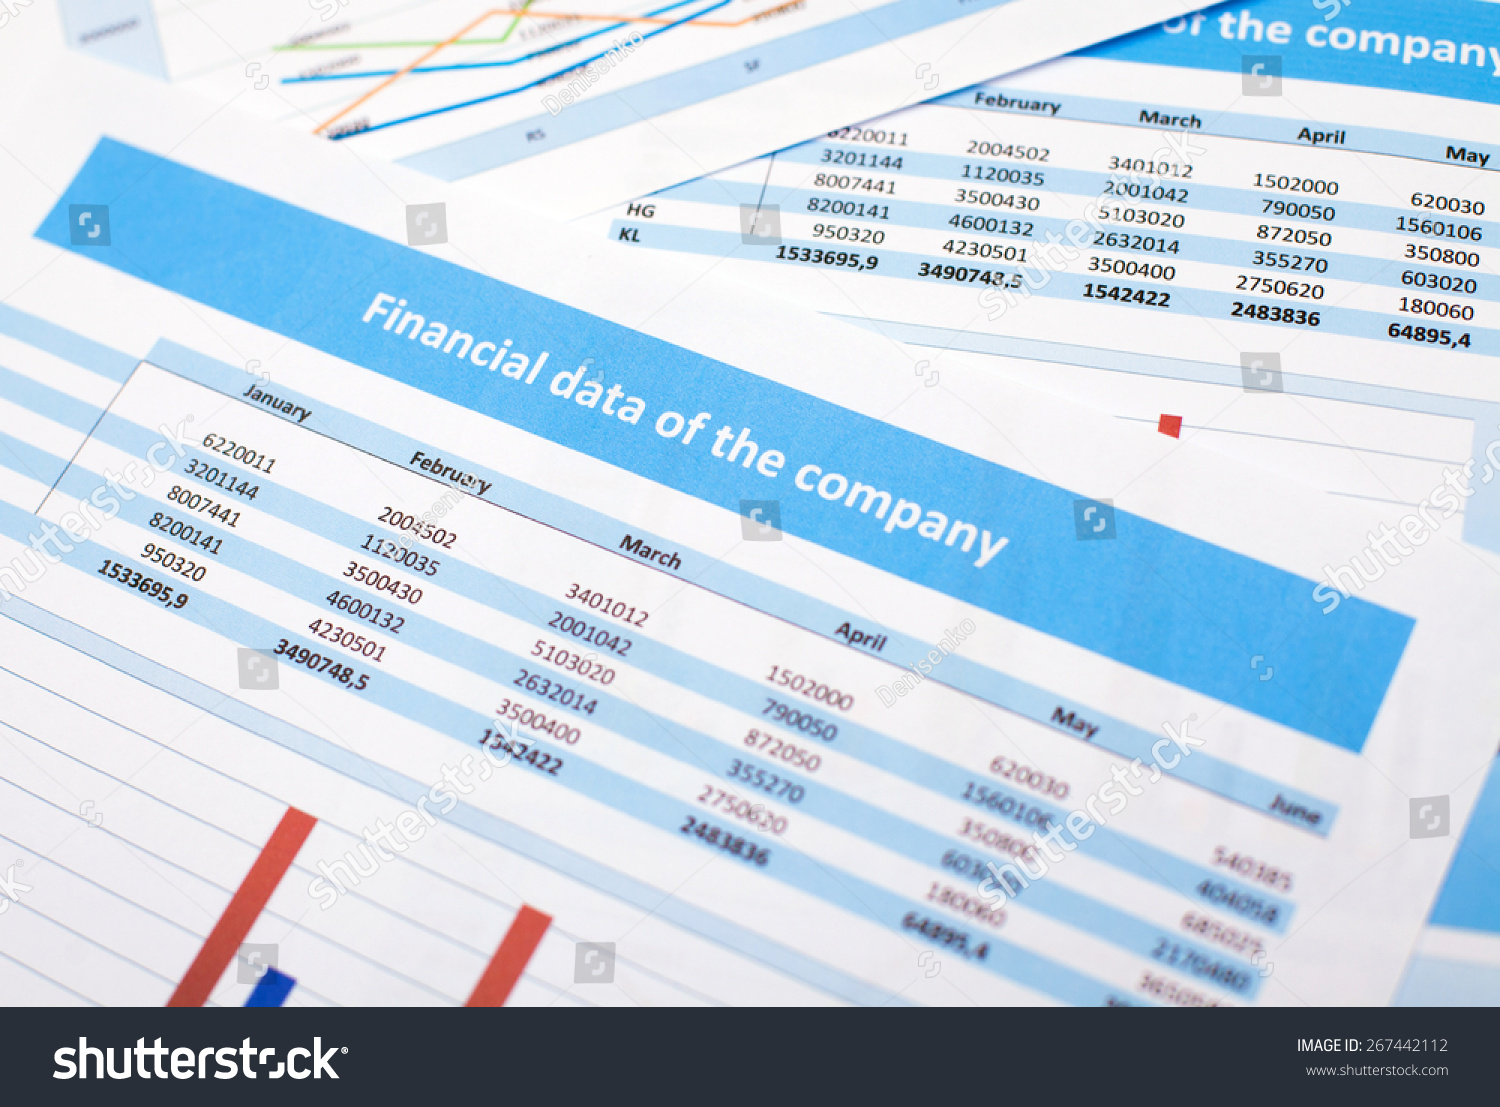 jamona corporation financial information In auditing the financial statements of jamona corp 10 require substantial revisions the audit work performed by each assistant should be reviewed to determine whether it was adequately performed and to evaluate whether a.